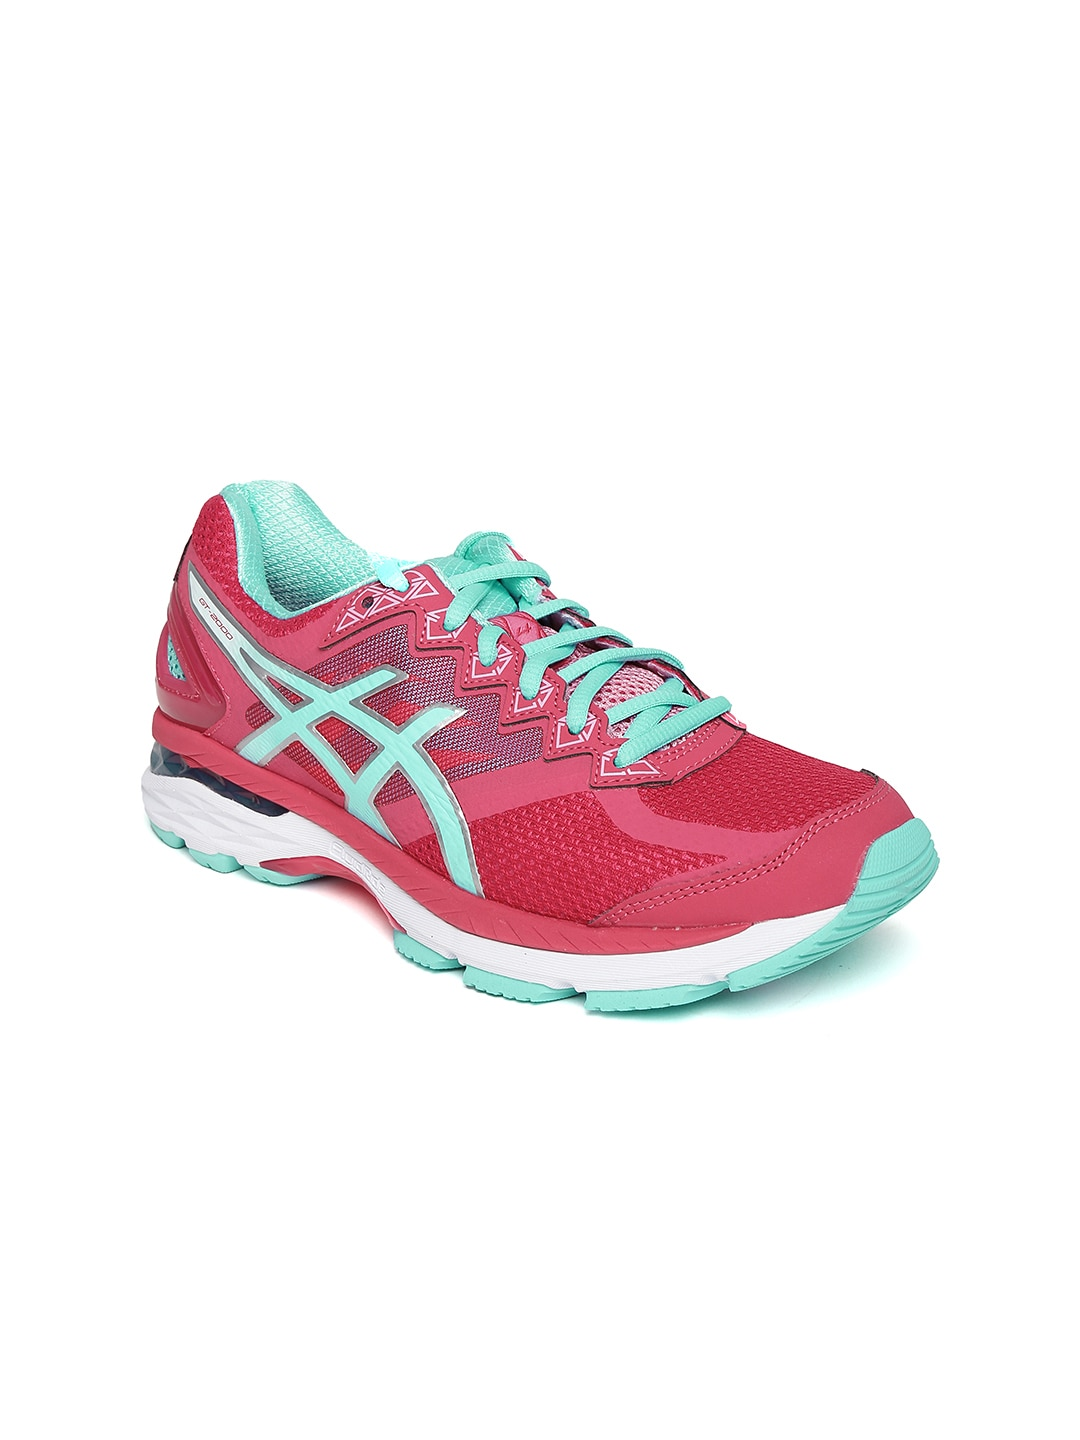 ASICS Women Pink GT-2000 4 Sports Shoes image